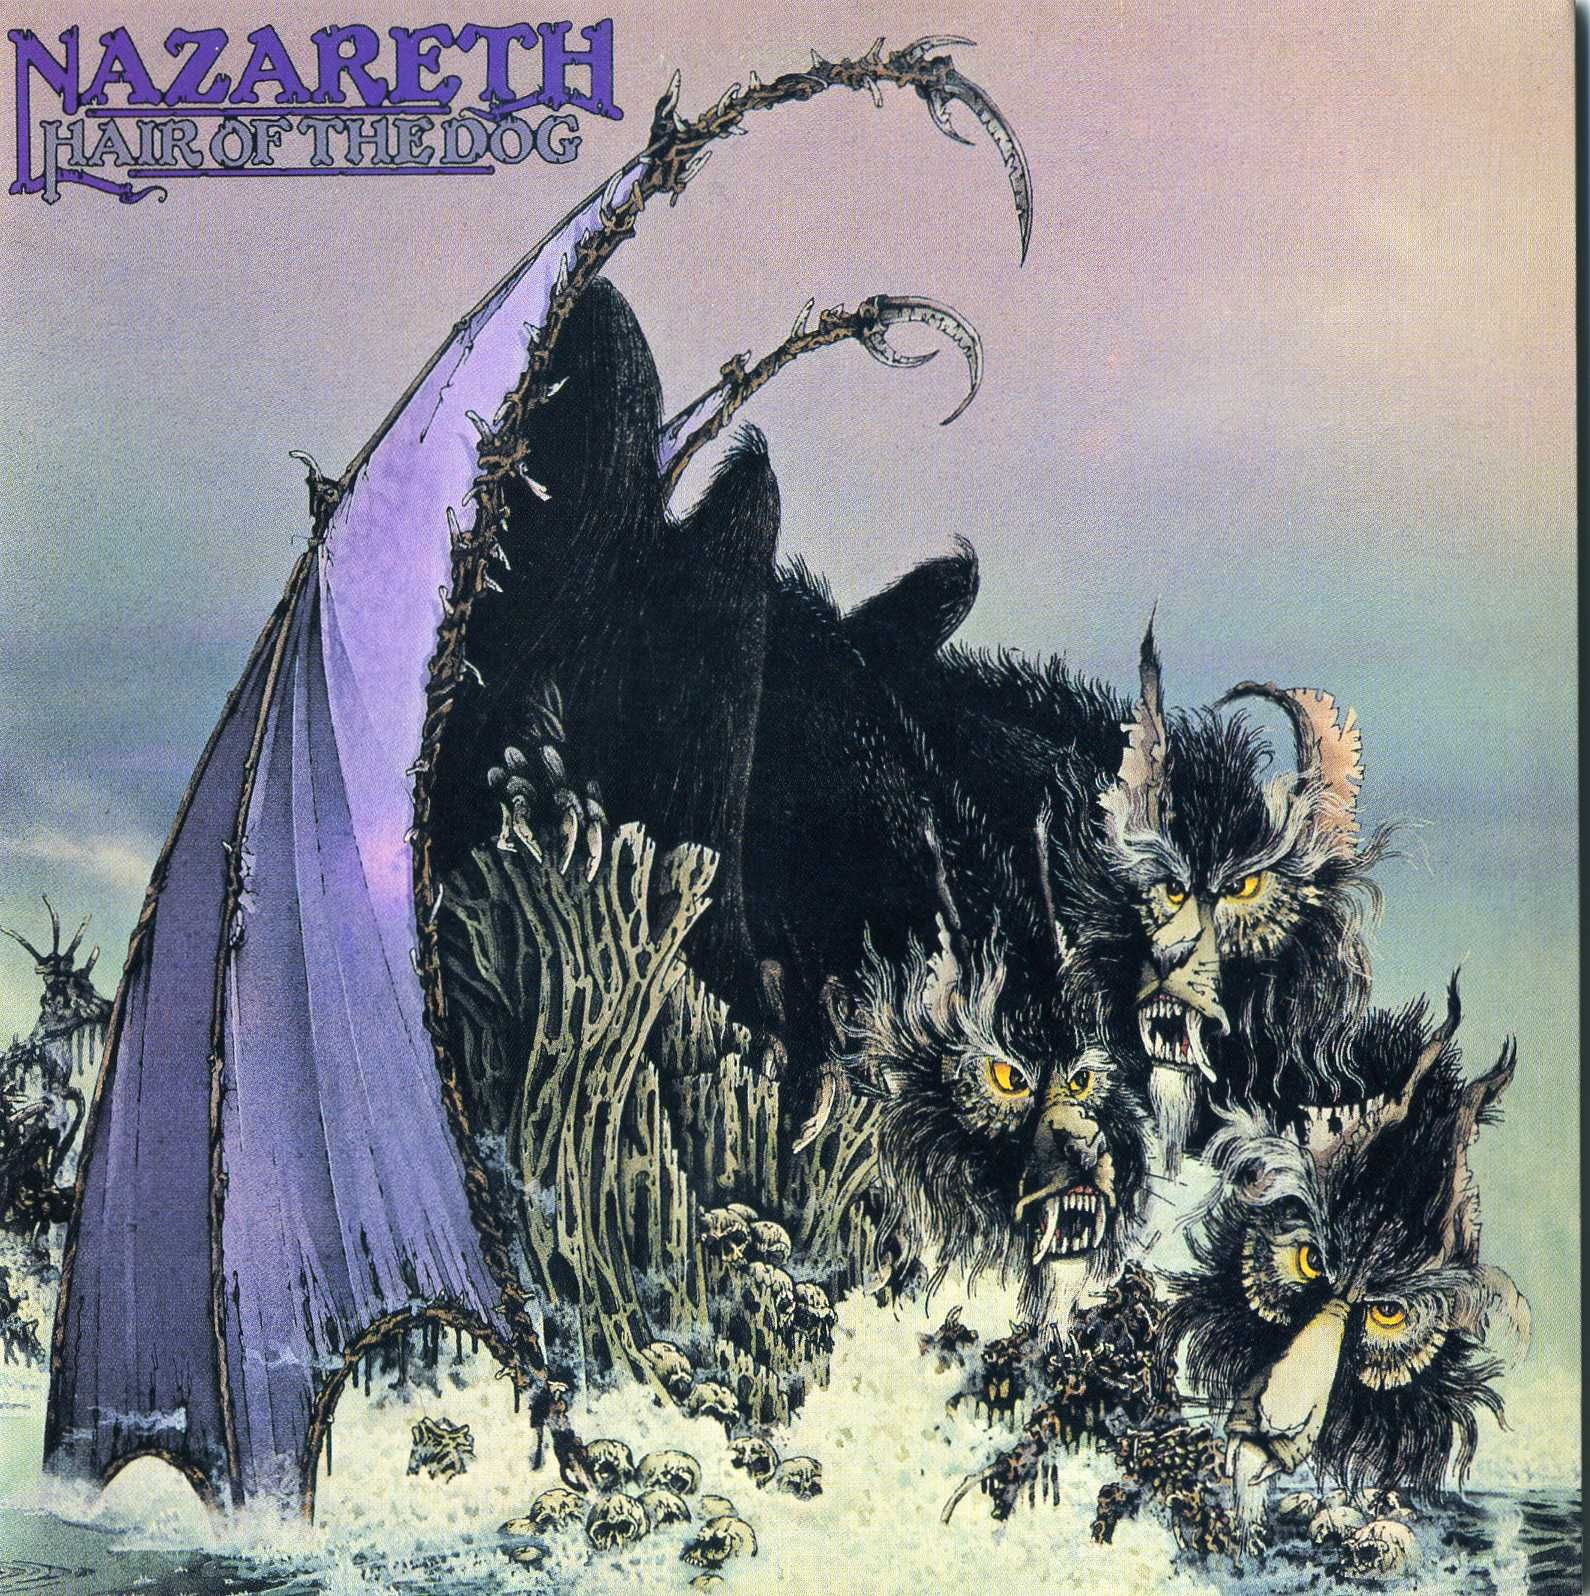 Nazareth Hair Of The Dog Scottish Hard Rock Band Formed In 68